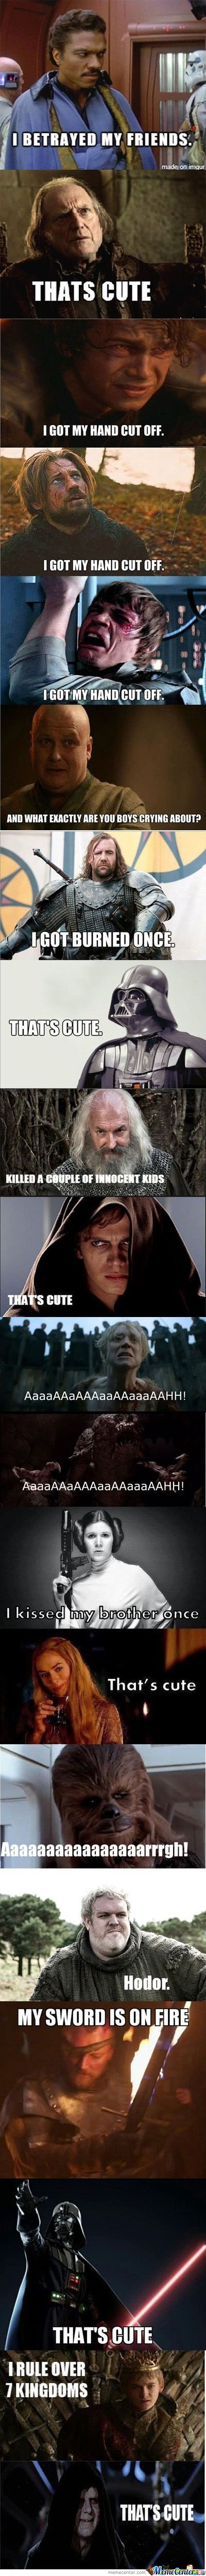 Game Of Thrones Vs. Star Wars